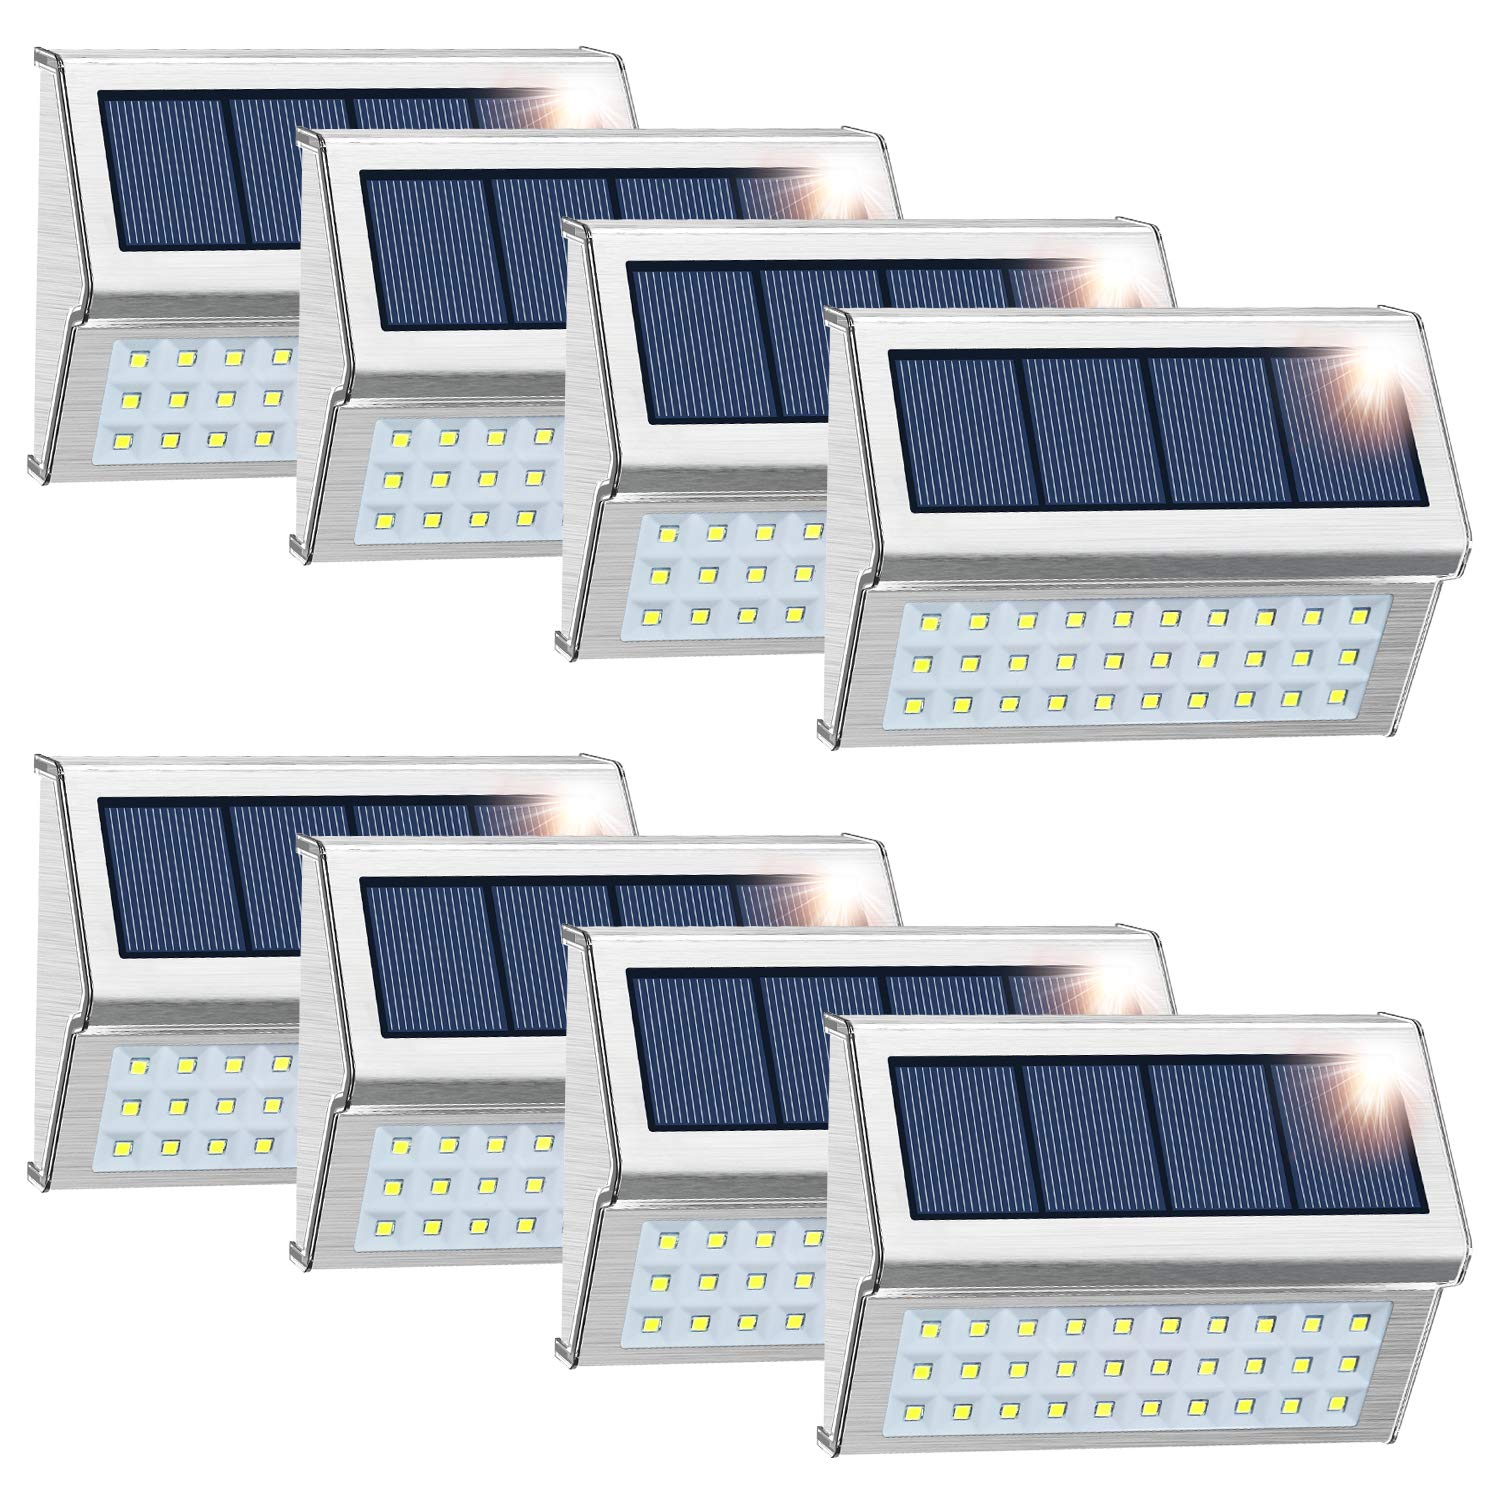 ROSHWEY Solar Deck Lights Outdoor, Waterproof Step Lamps Stainless Steel 30 LED Walkway Security Lights for Garden Fence Patio Pathway (Cool White Light, 8 Pack) by ROSHWEY